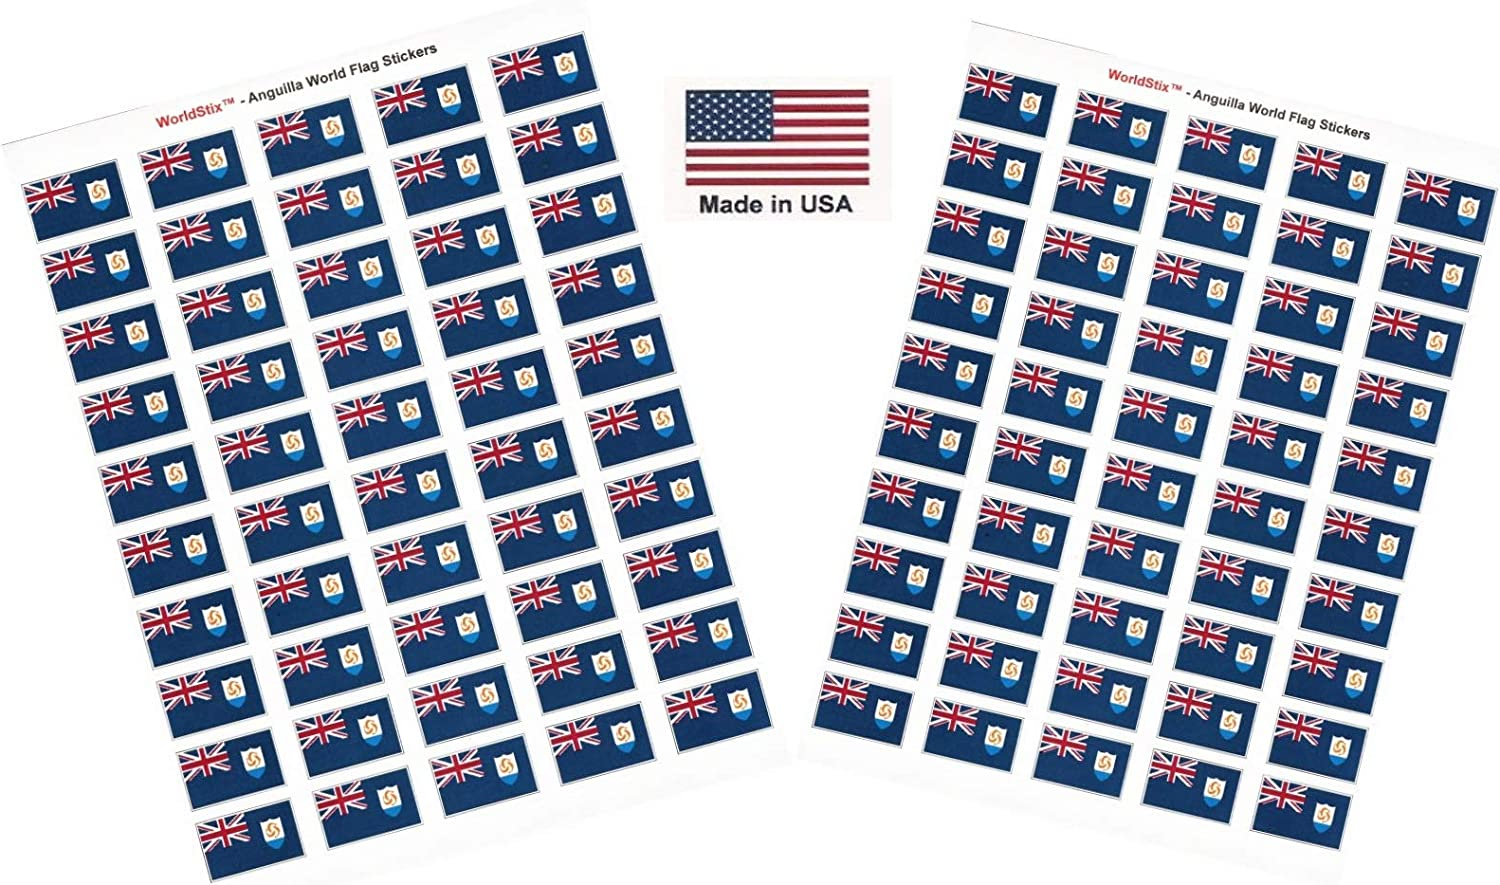 Two Sheets of 50 Belize 100 Country Flag 1.5 x 1 Self Adhesive World Flag Stickers Made in USA 100 Sticker Flags Total